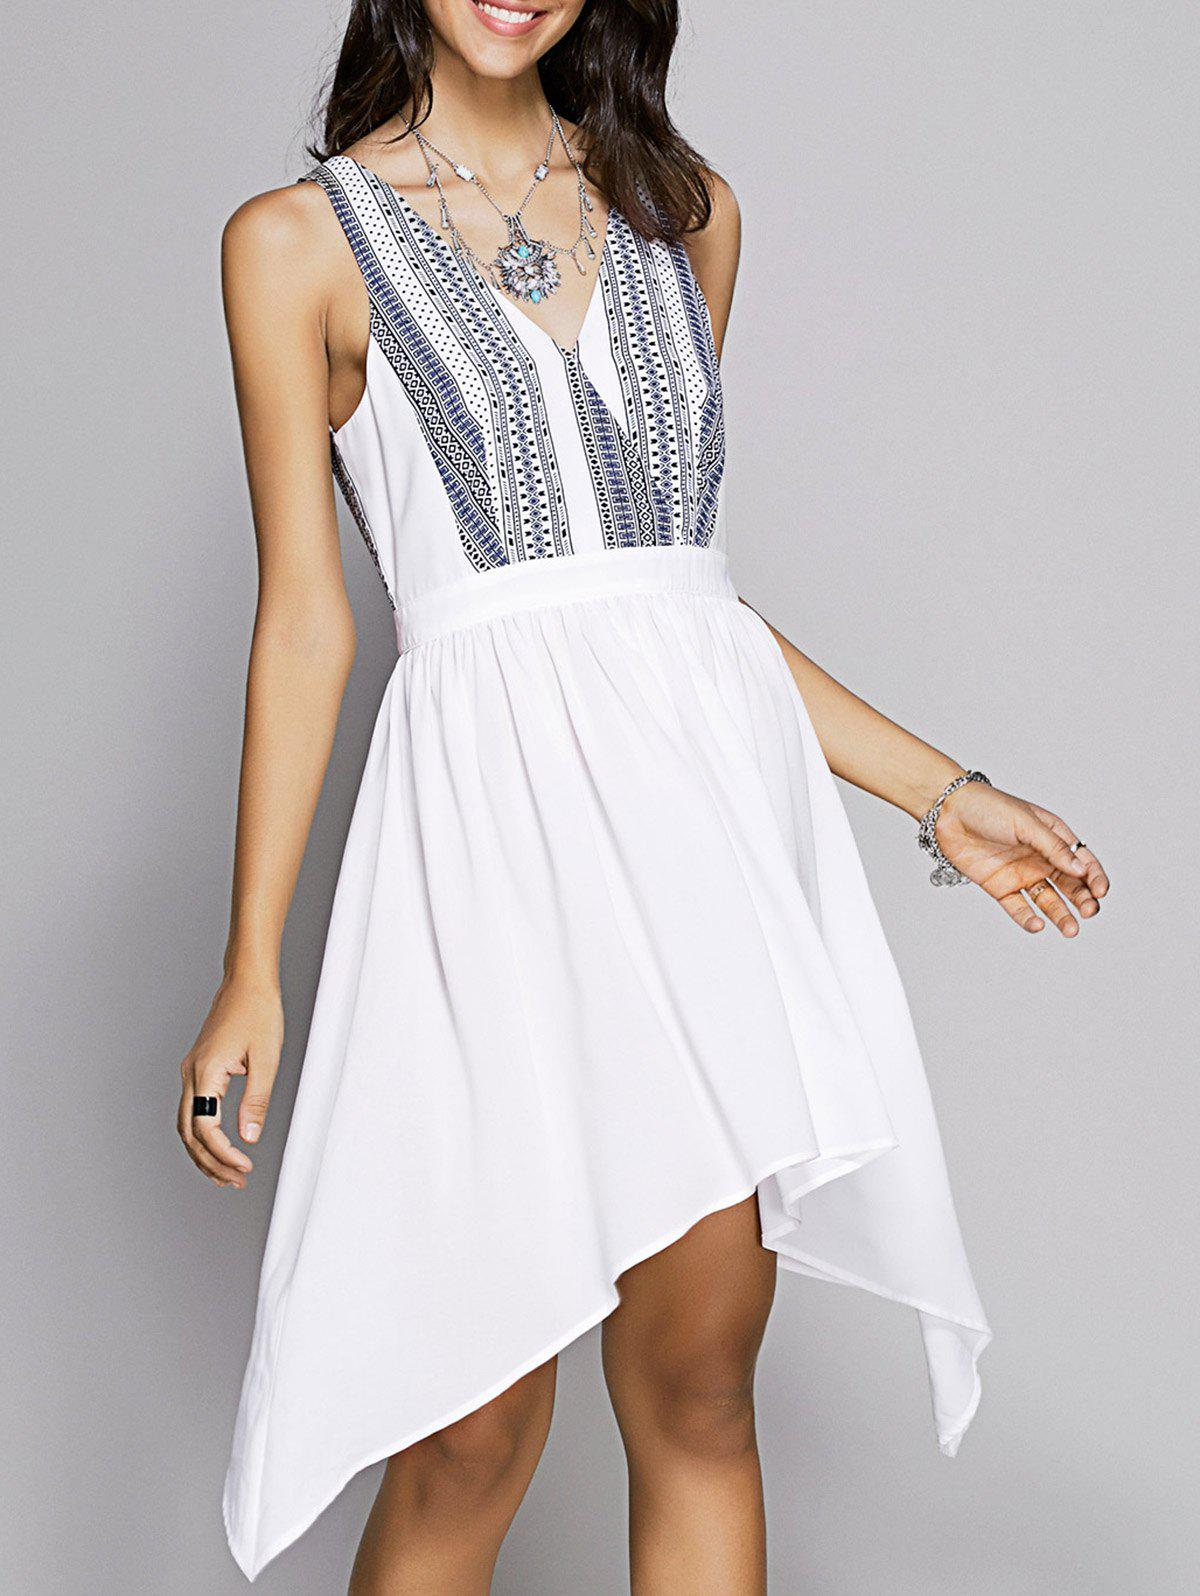 Sweet Women's Fitted V-Neck Printed Dress - WHITE S